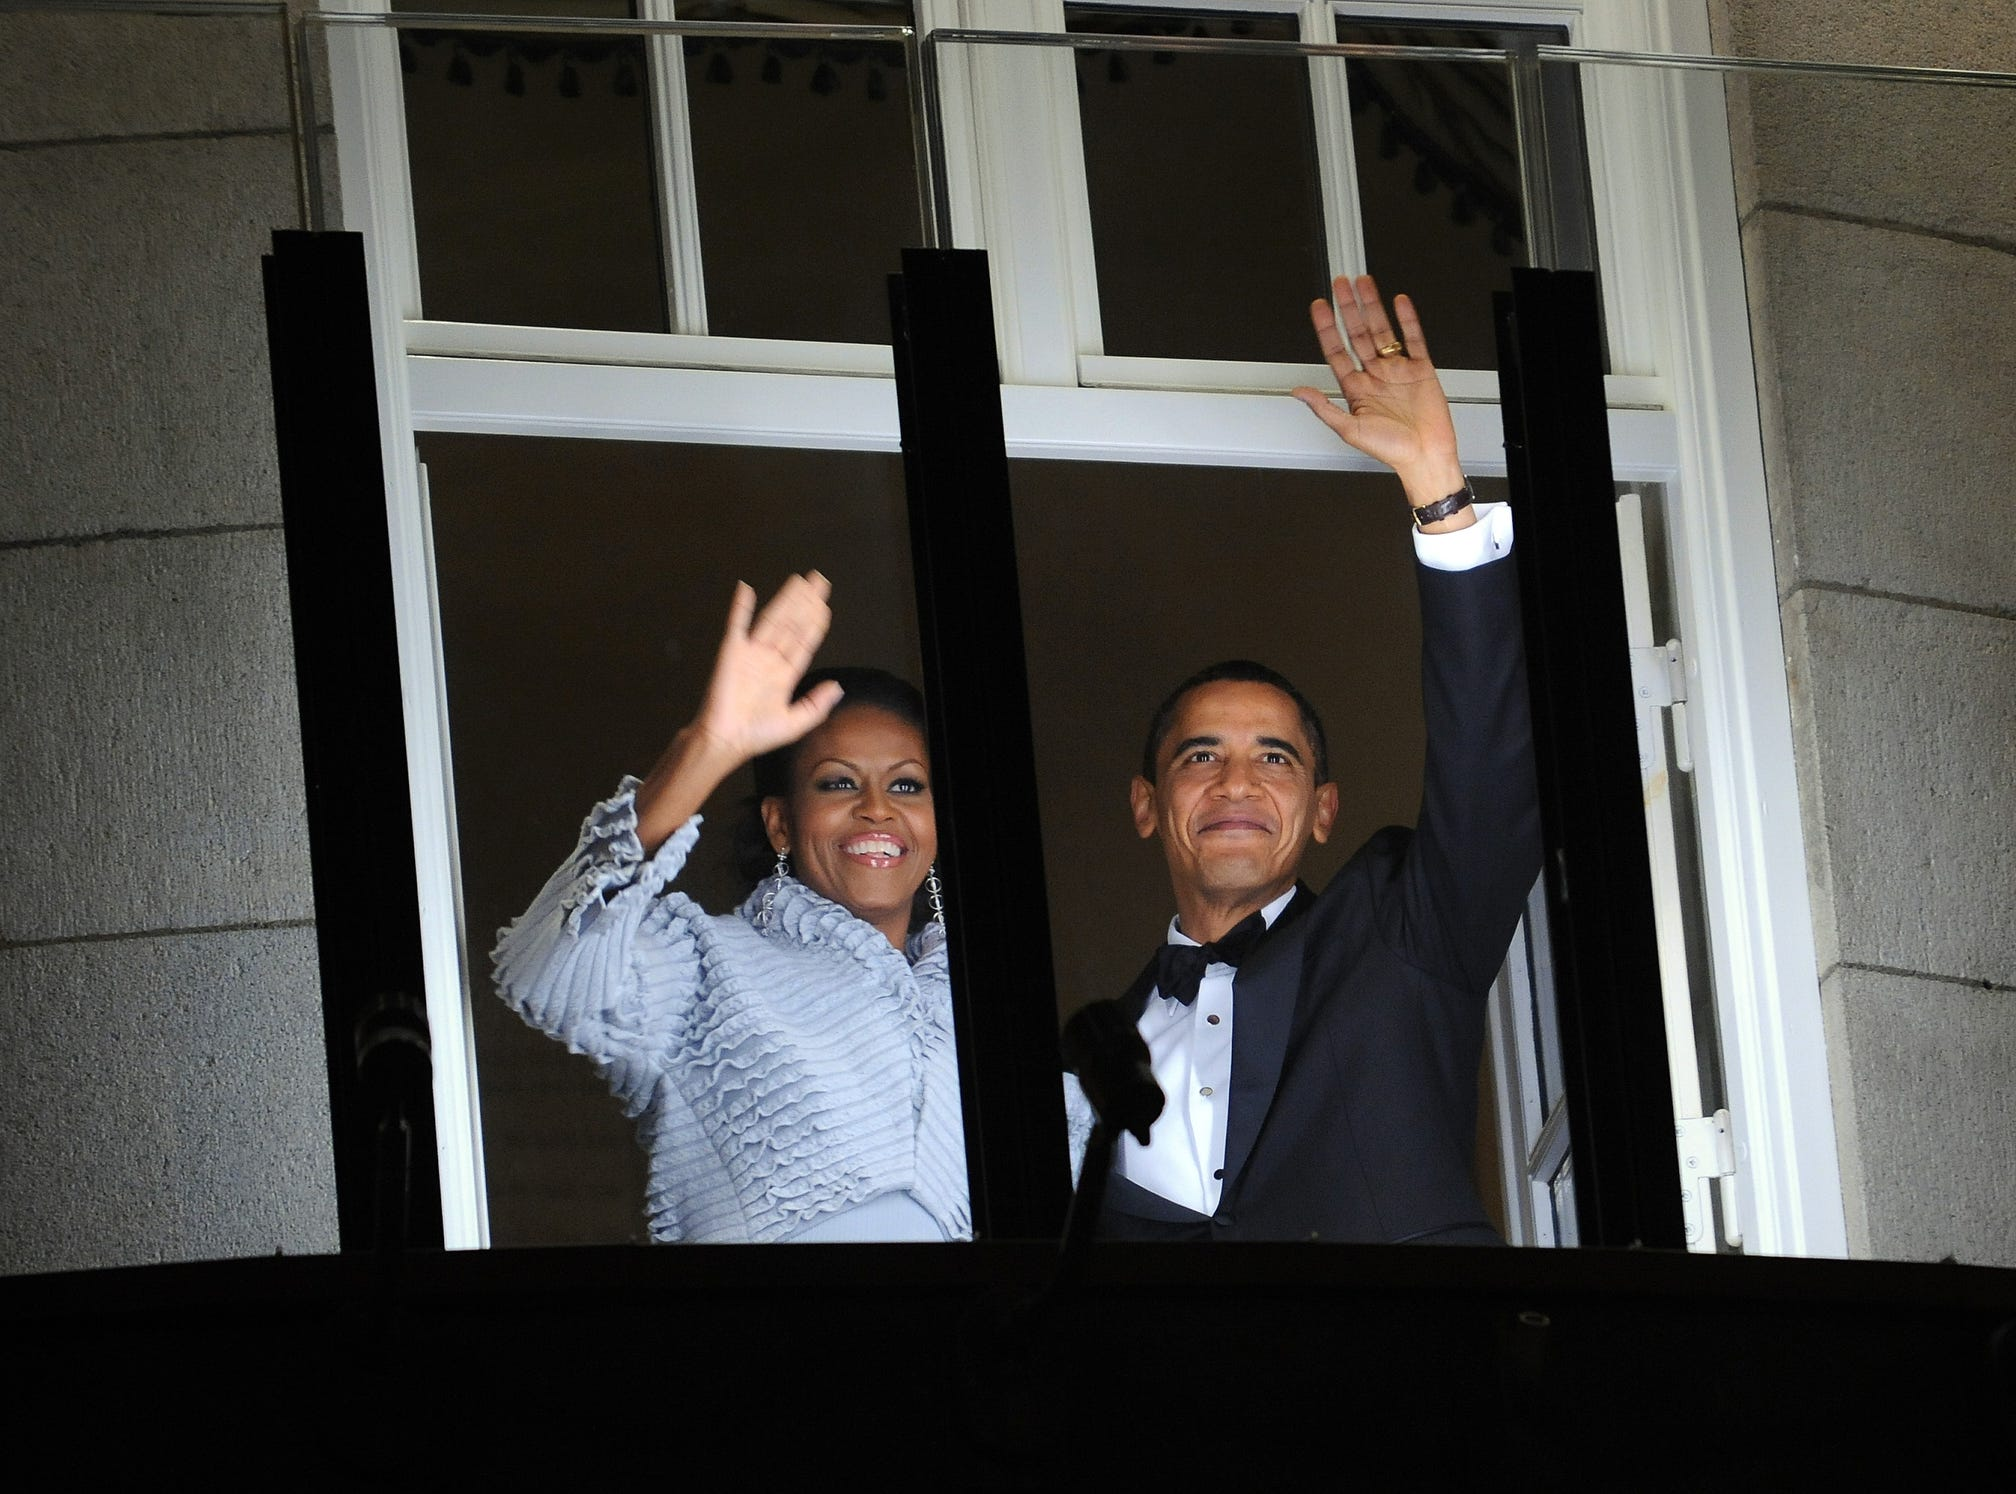 Nobel Peace Prize laureate, US President Barack Obama (R) and First Lady Michelle Obama greet the torch parade from the balcony of the Grand Hotel in Oslo on December 10, 2009. US President Barack Obama today accepted the Nobel Peace Prize, uncomfortably acknowledging his role as a leader at war while insisting that conflict can be morally justified.  AFP PHOTO/Jewel SAMAD (Photo credit should read JEWEL SAMAD/AFP/Getty Images)